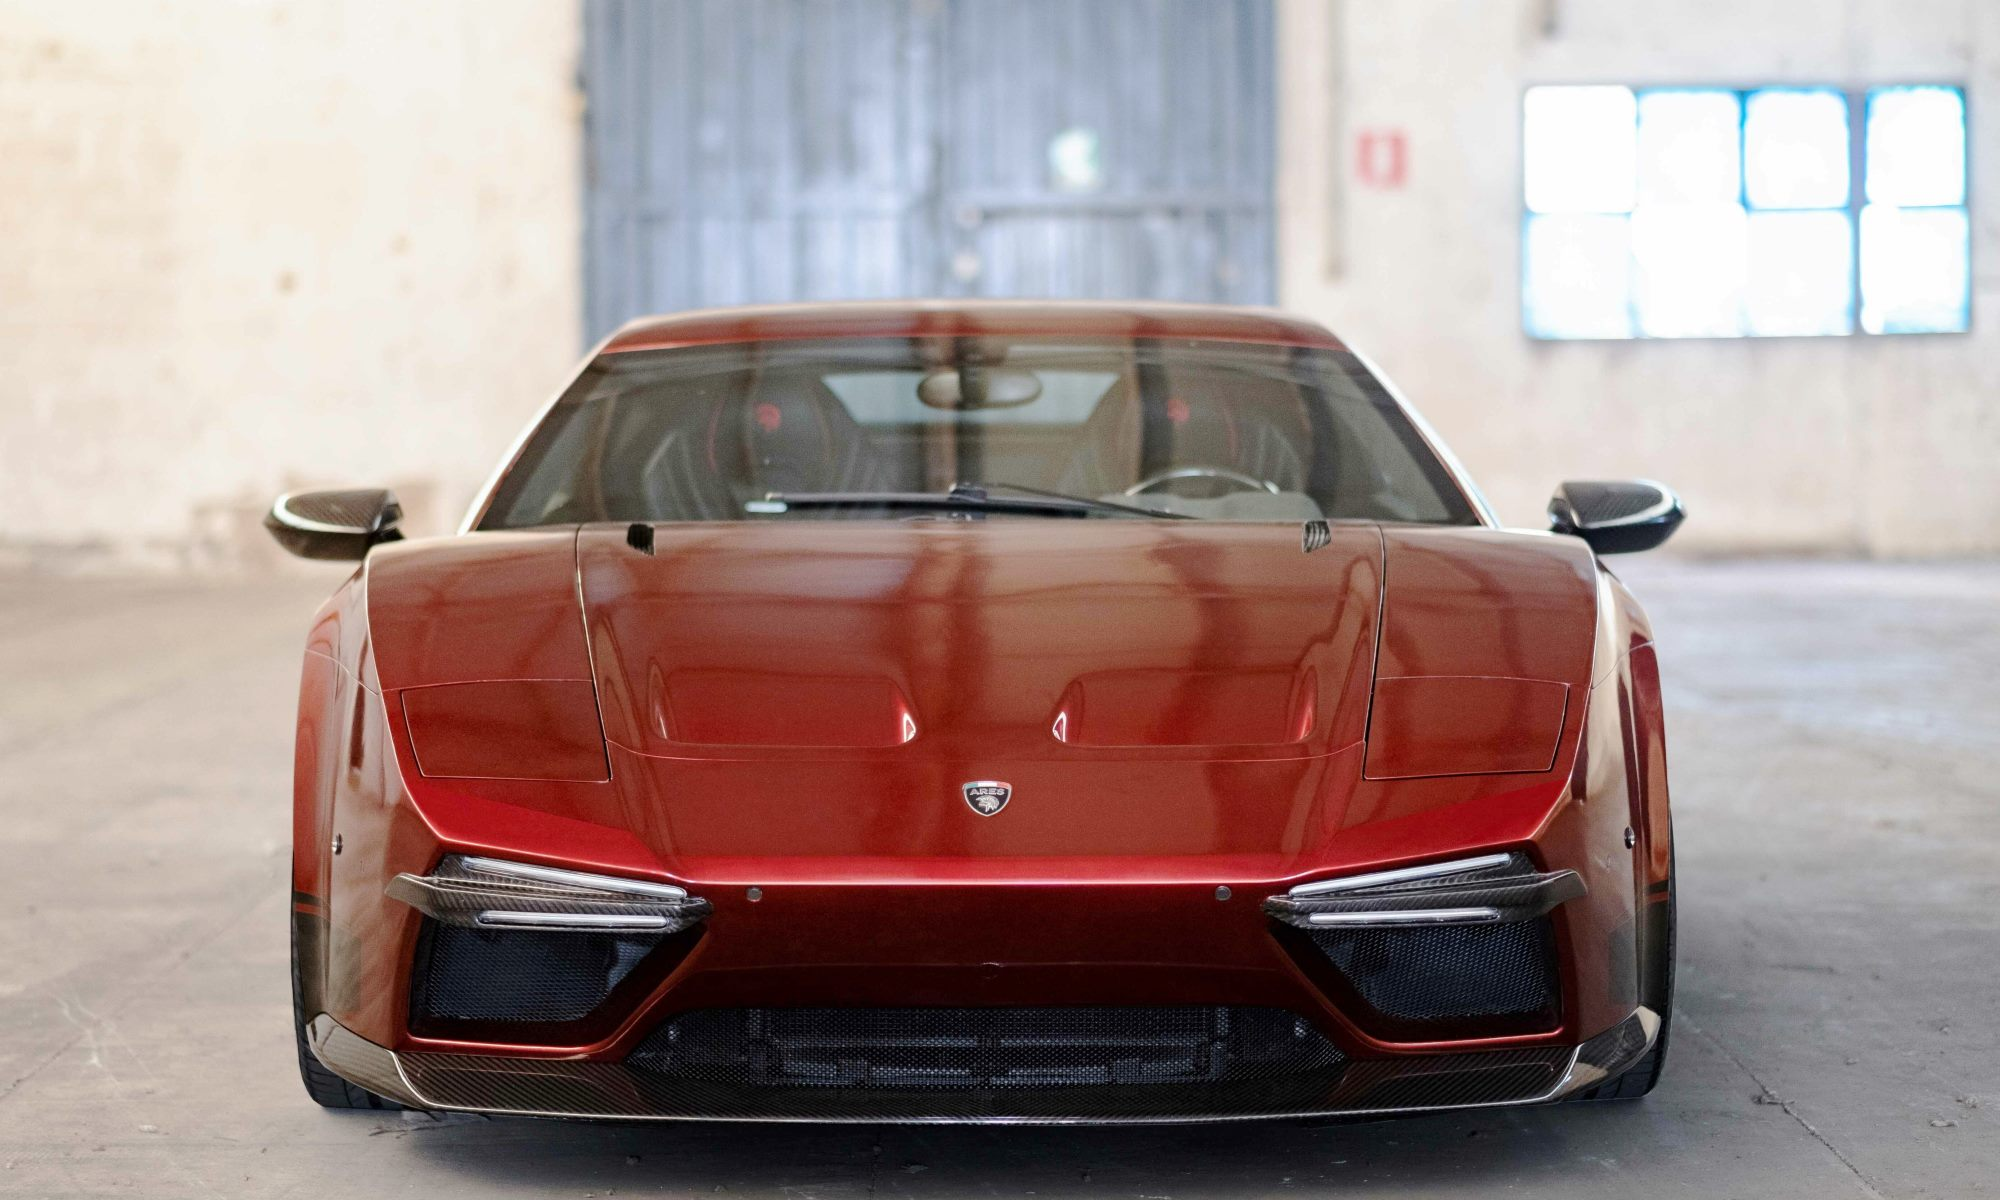 Panther Project 1 front